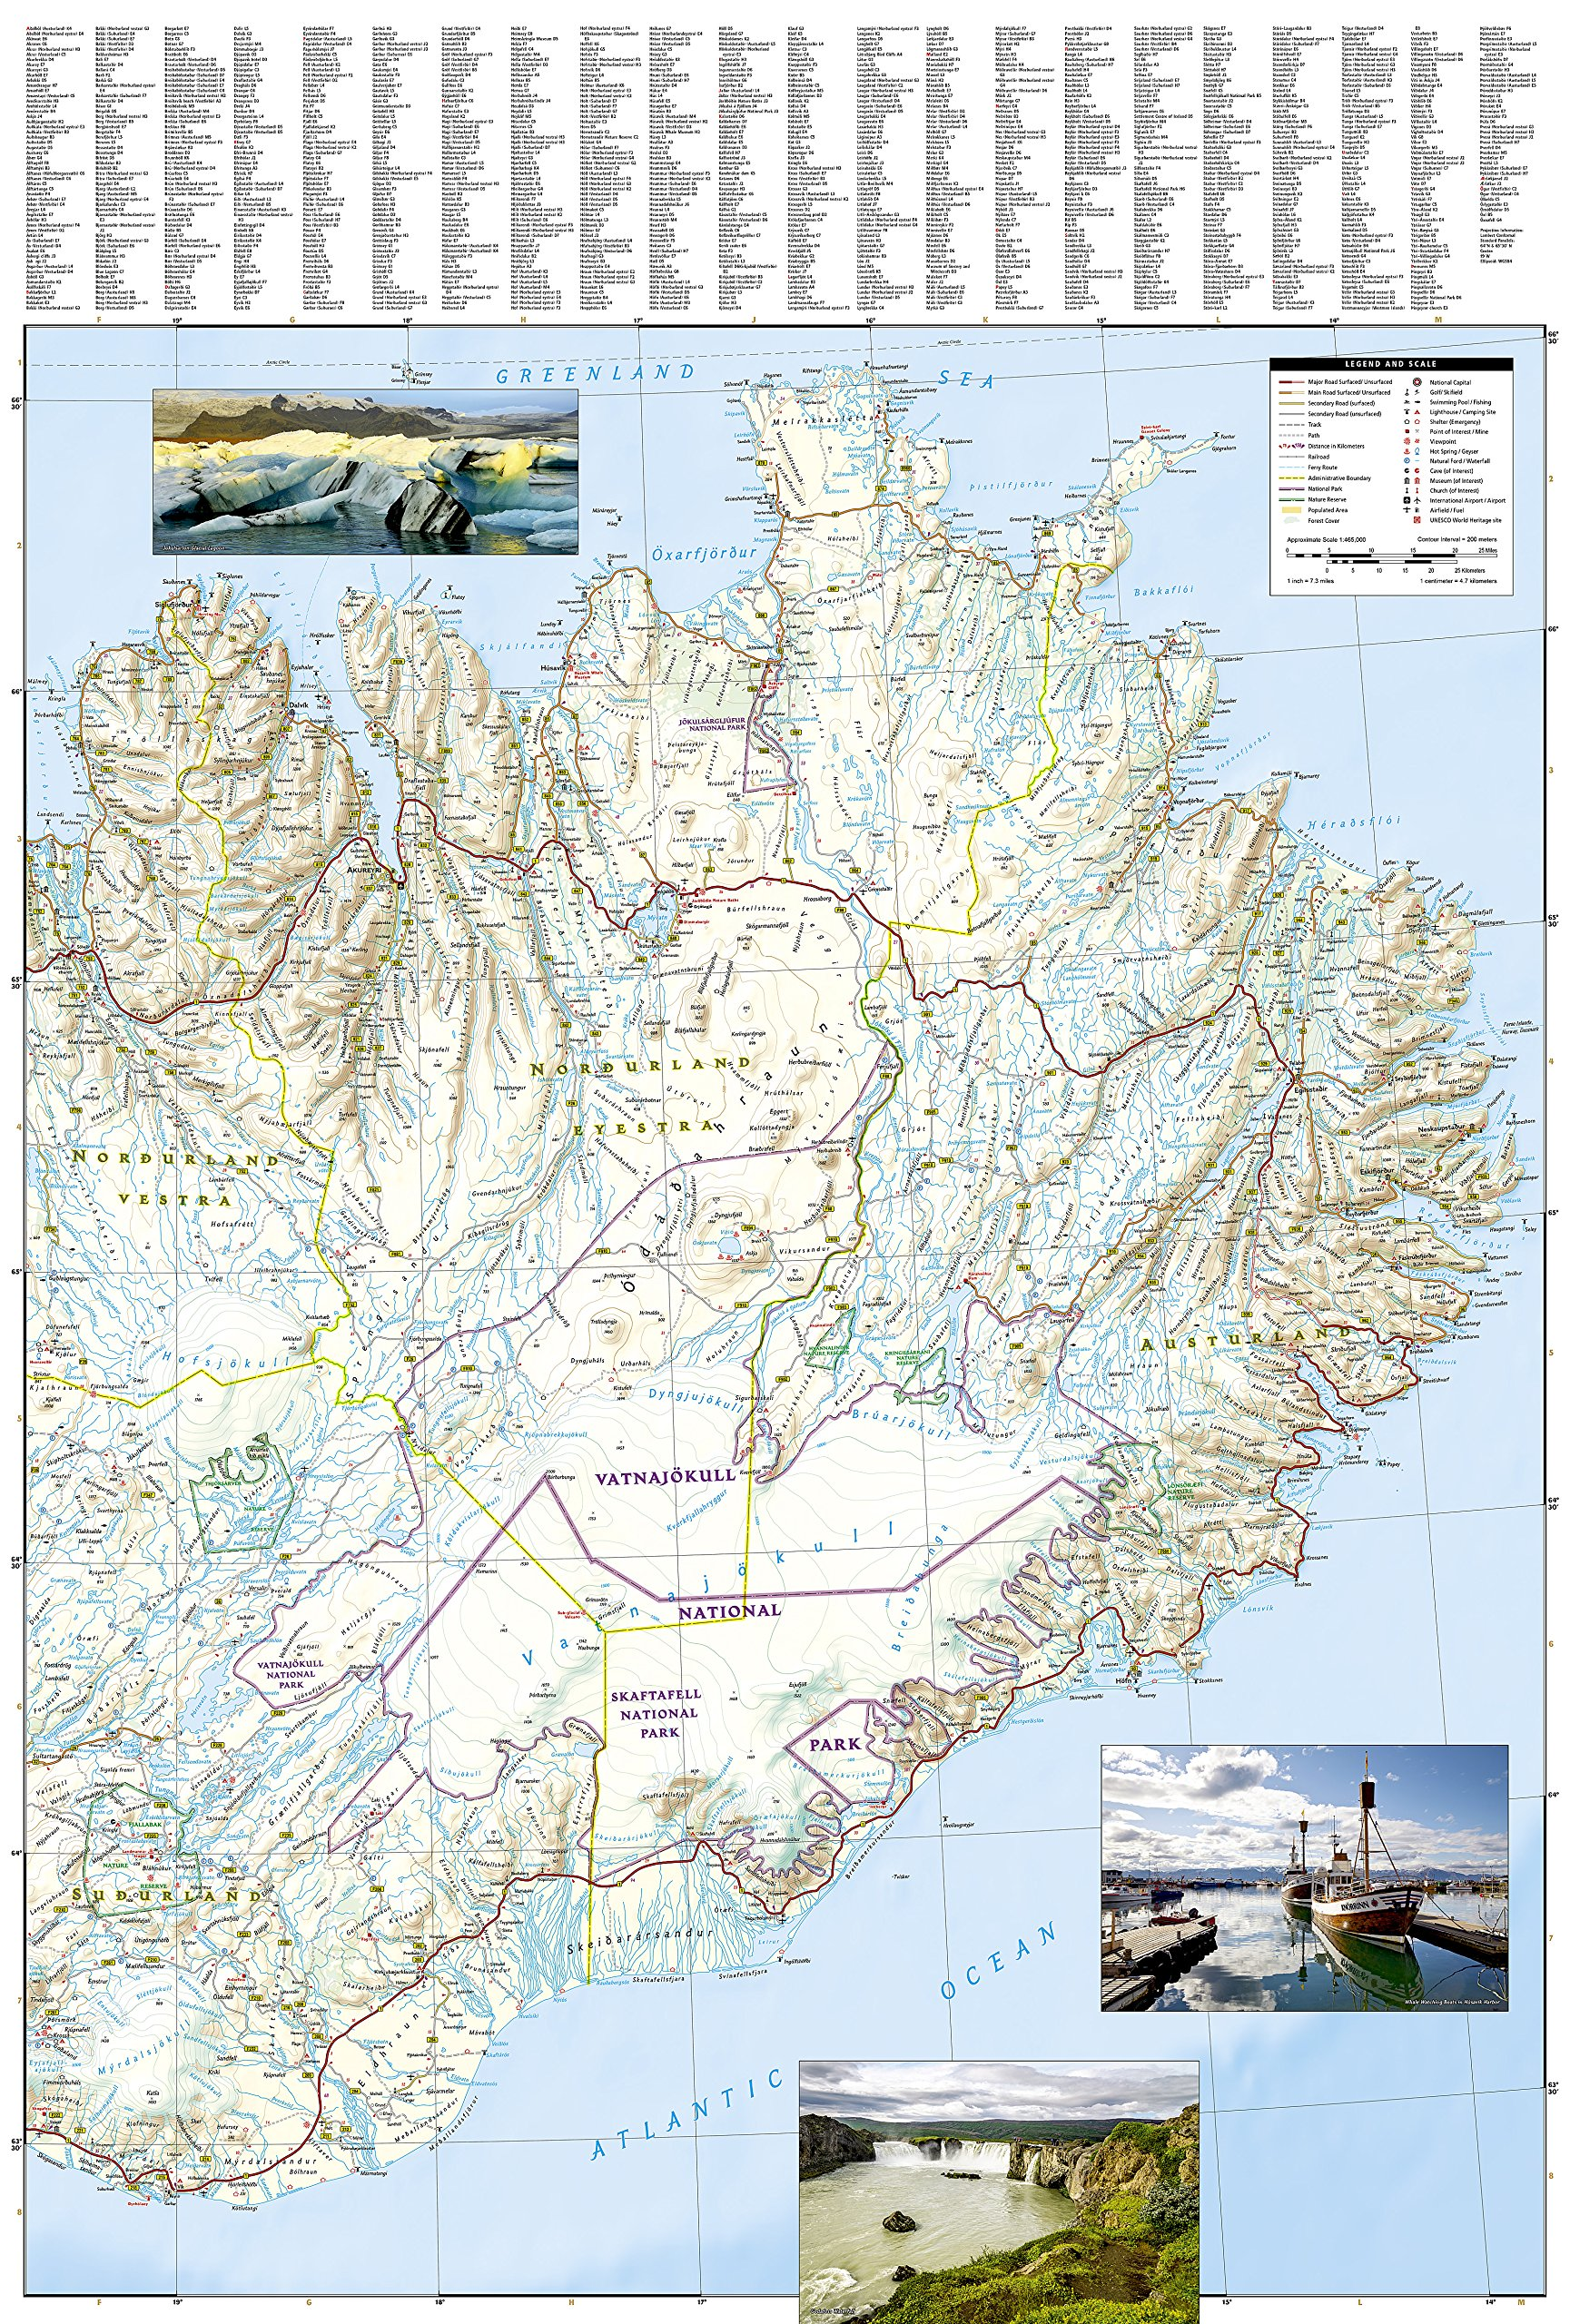 Iceland travel maps international adventure map national geographic iceland travel maps international adventure map national geographic adventure map amazon national geographic maps books gumiabroncs Gallery